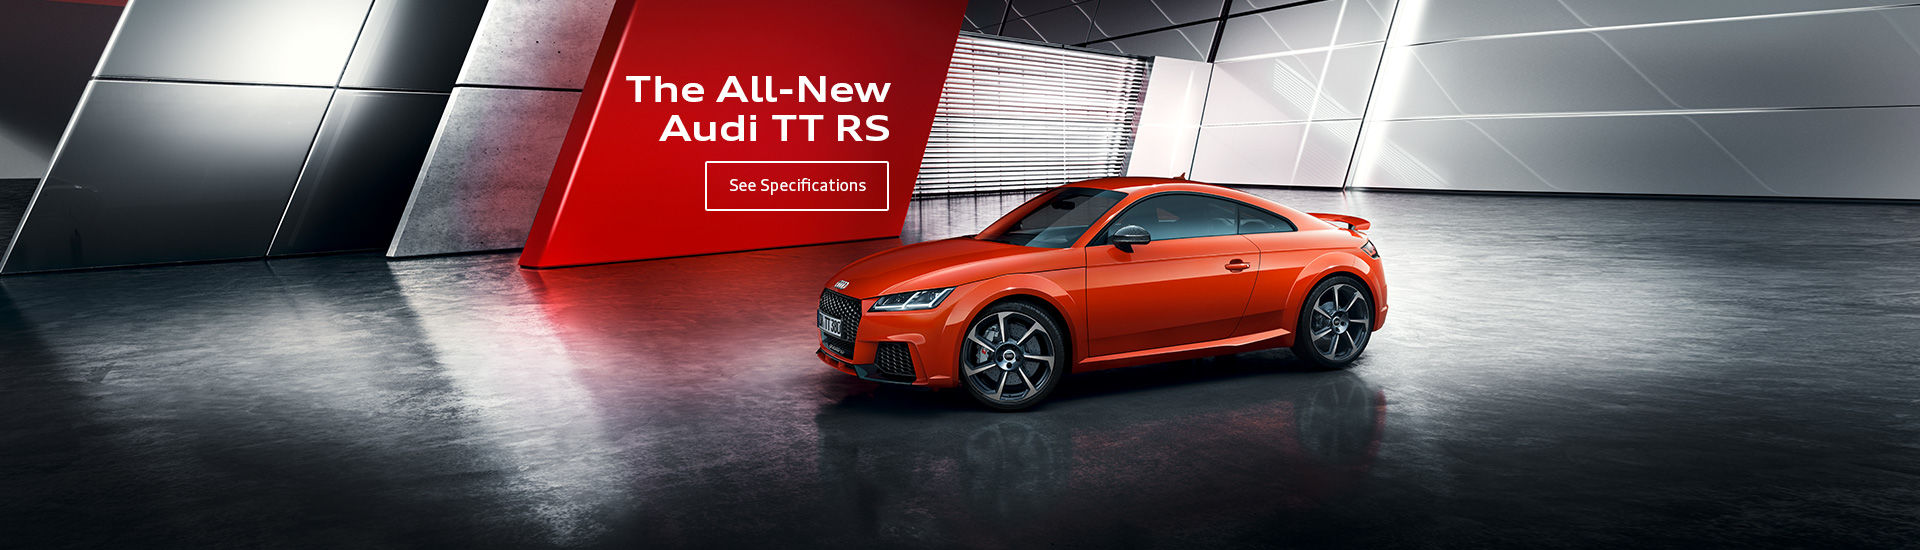 offers industry price potential automobile announces glocar audi india hike before blog unbeatable